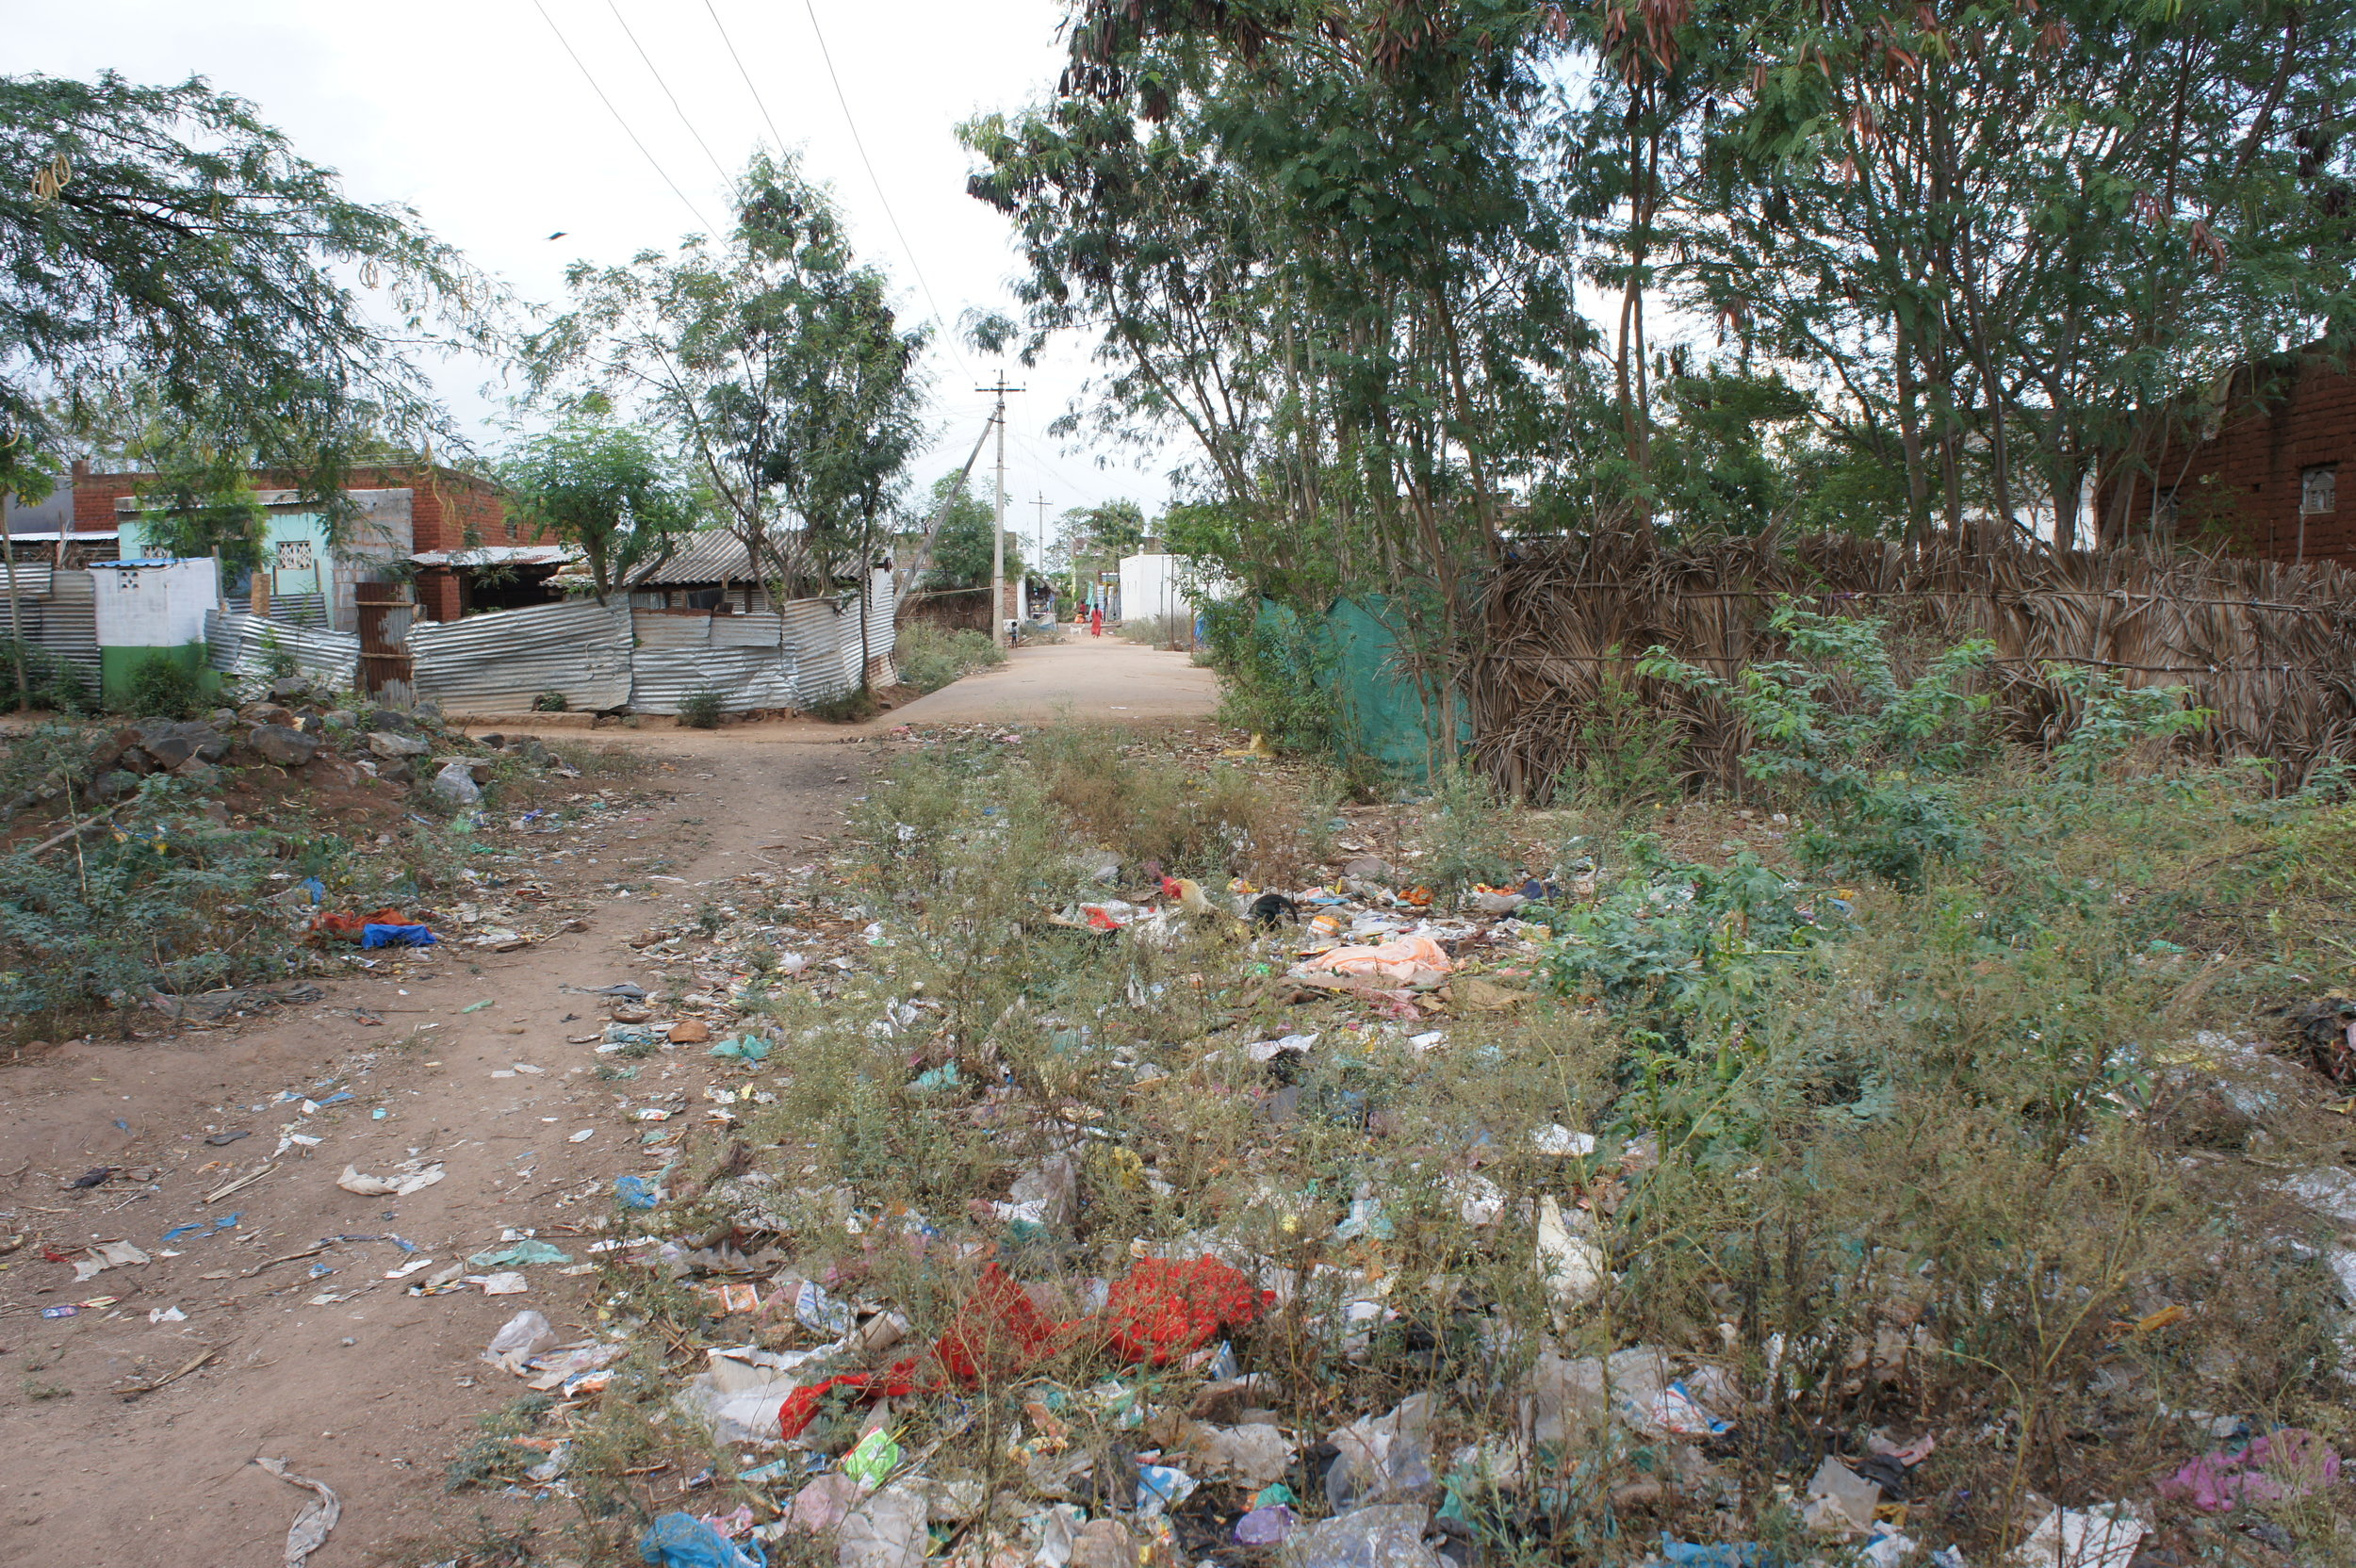 Streets filled with rubbish